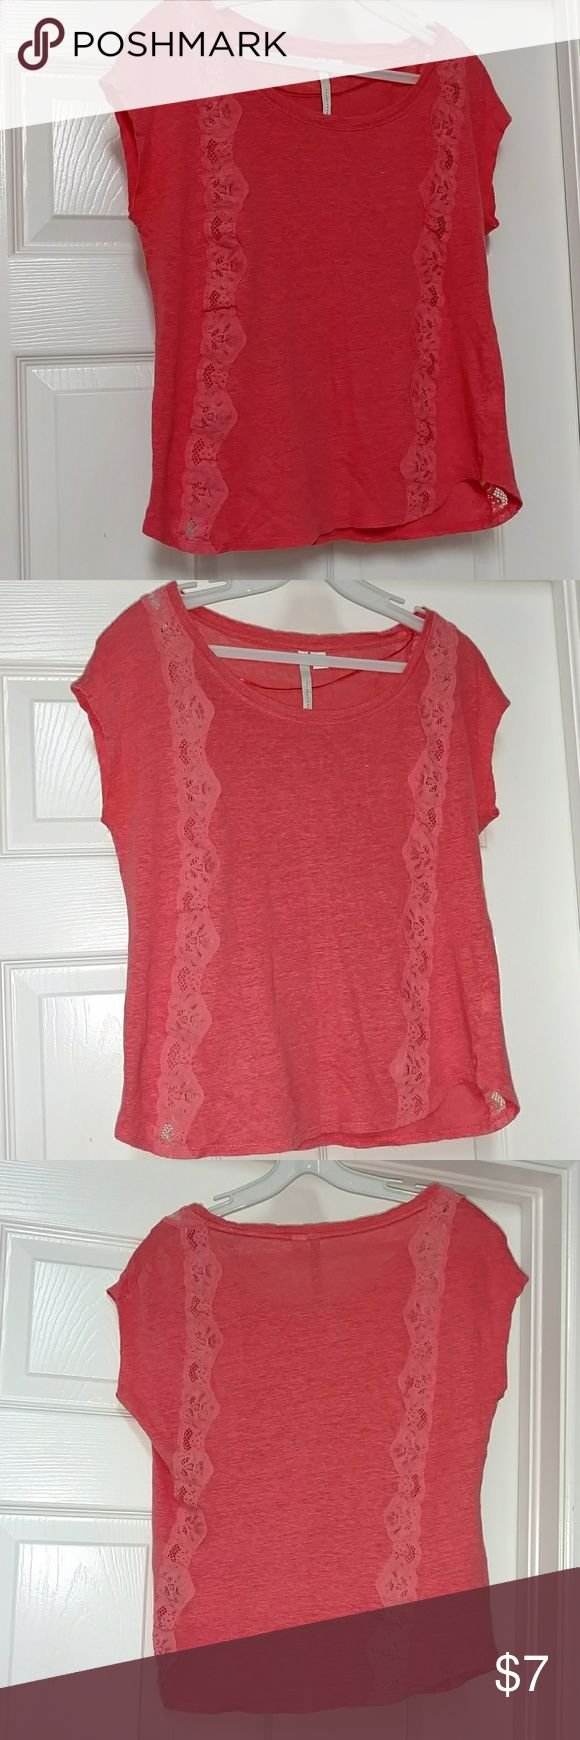 Lauren Conrad Coral Shirt Top Lace XS XS Coral Lauren Conrad top. Has lace down the front and back. Used. Textured fabric. Some slight pilling. Smoke free but bird friendly home. Lauren Conrad  Tops Blouses